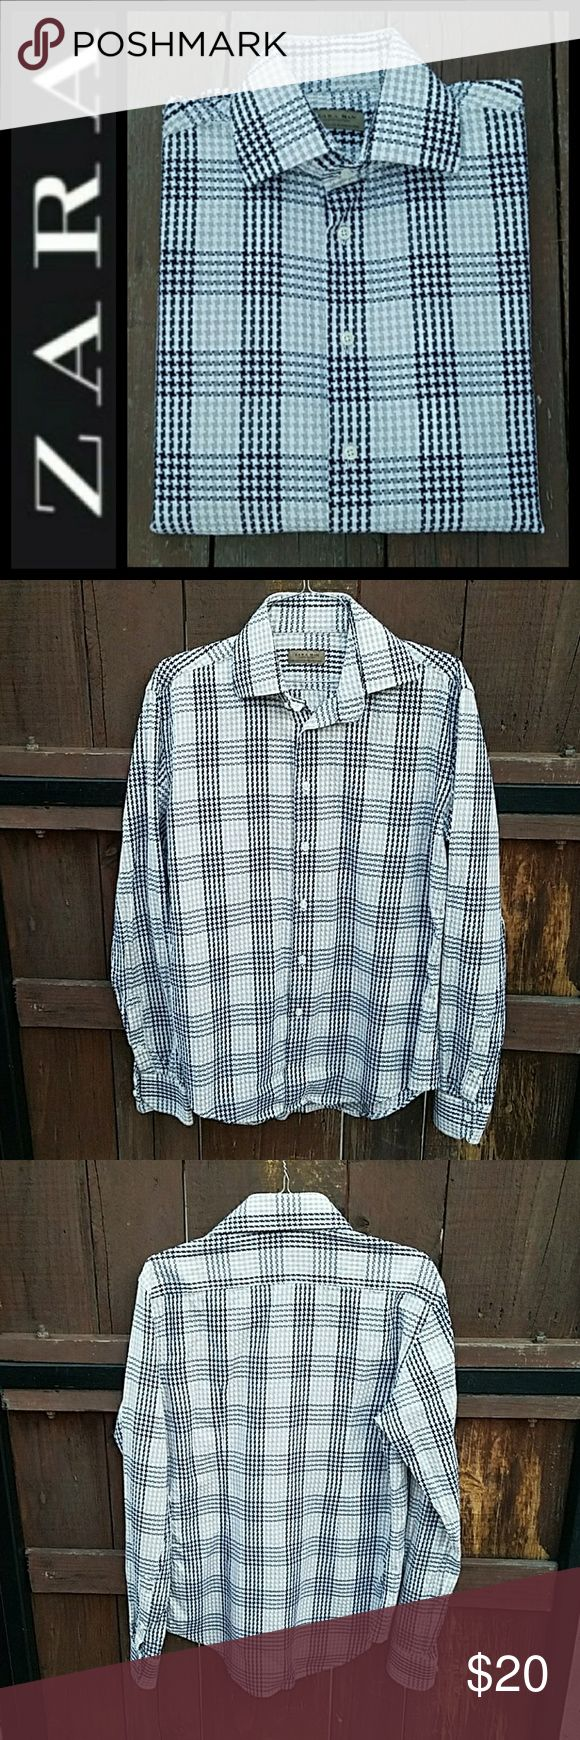 """4th July Sale! Houndstood print by Zara man limited edition in multi colors. In great condition. Outseam fron center approx 28-1/2"""" Shoulder from (seam-to-seam) 18-1/2"""". Zara Shirts Casual Button Down Shirts"""